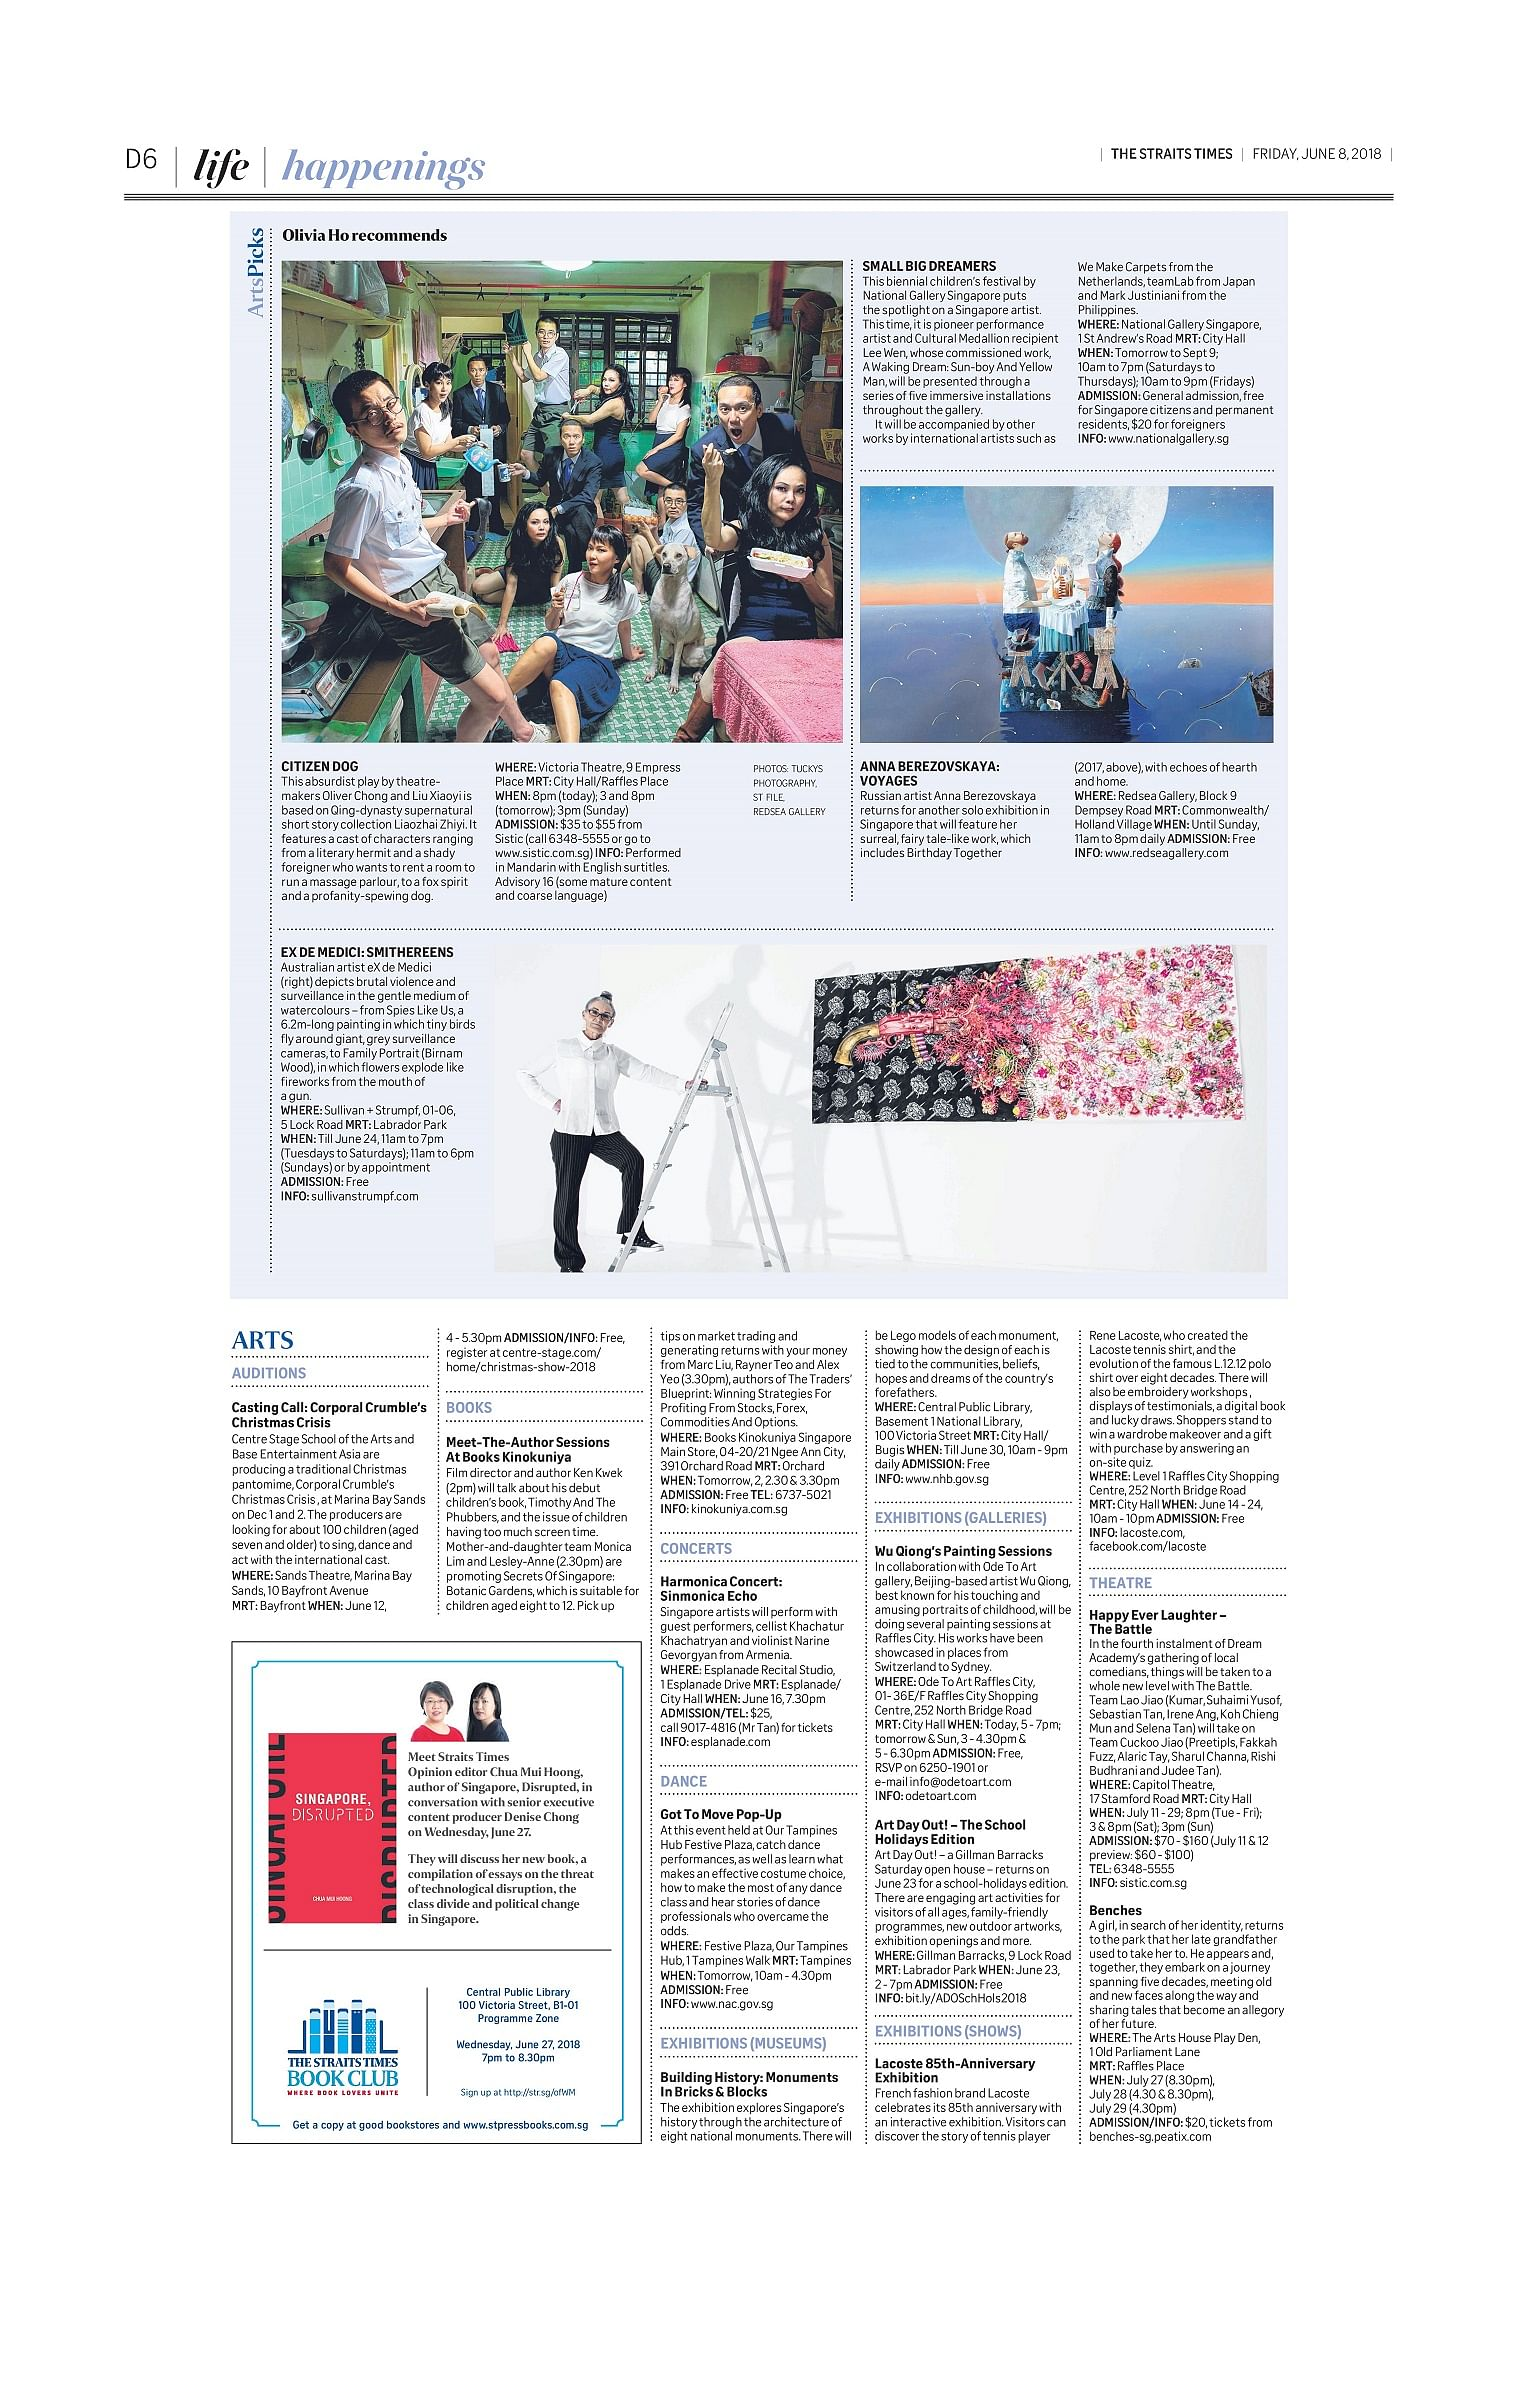 Happenings - Arts, Arts News & Top Stories - The Straits Times